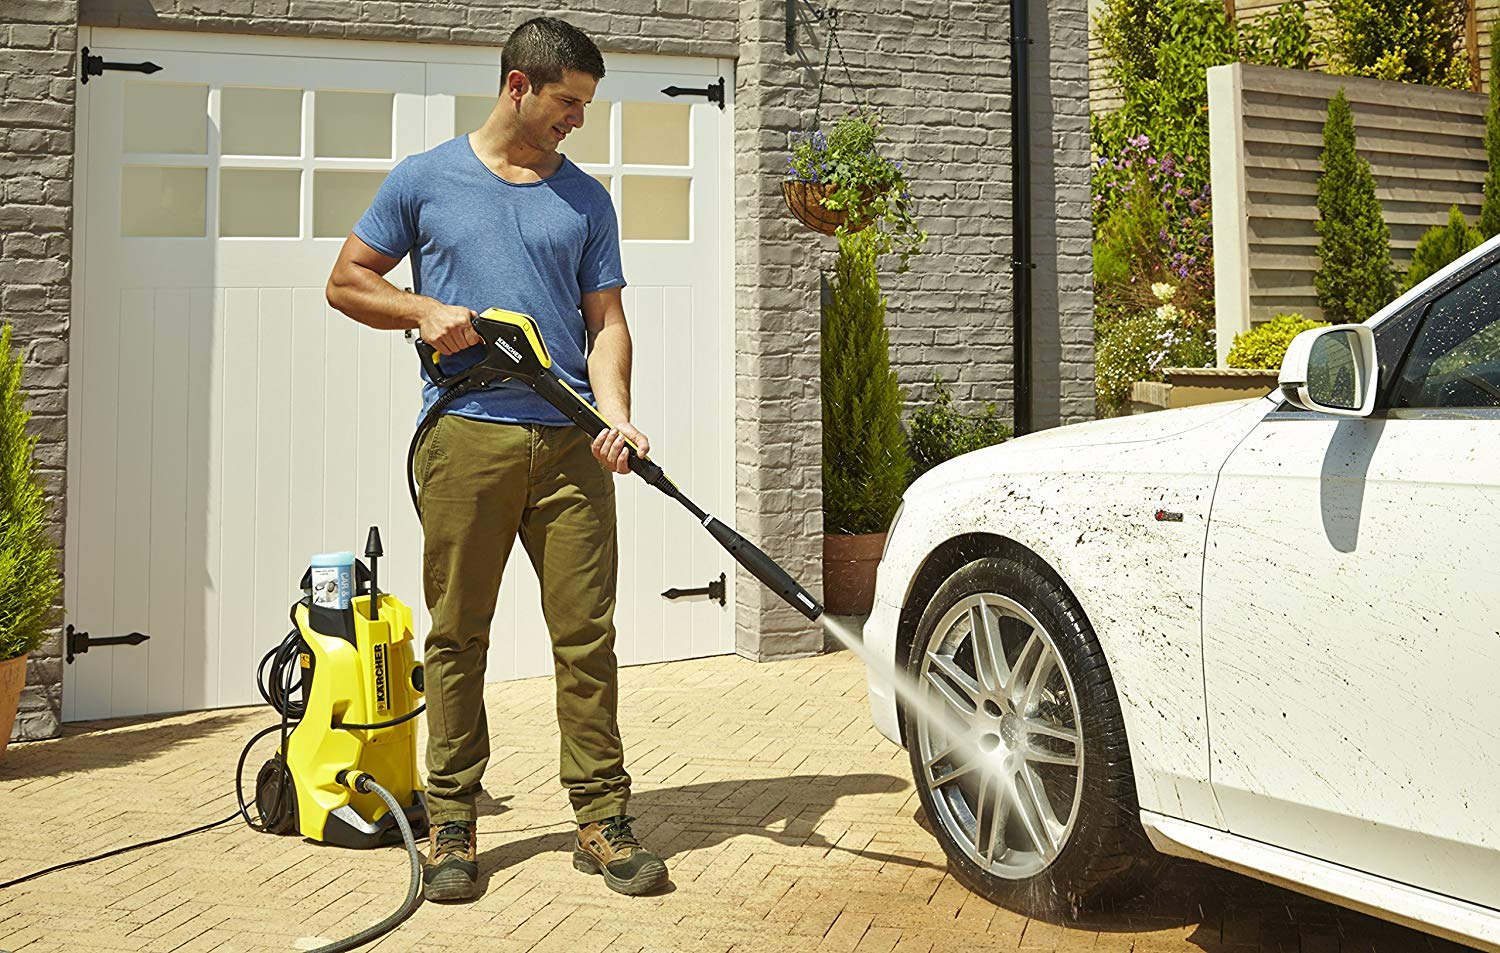 Karcher K4 Review 2019 - Is It The Right Pressure Washer For You?